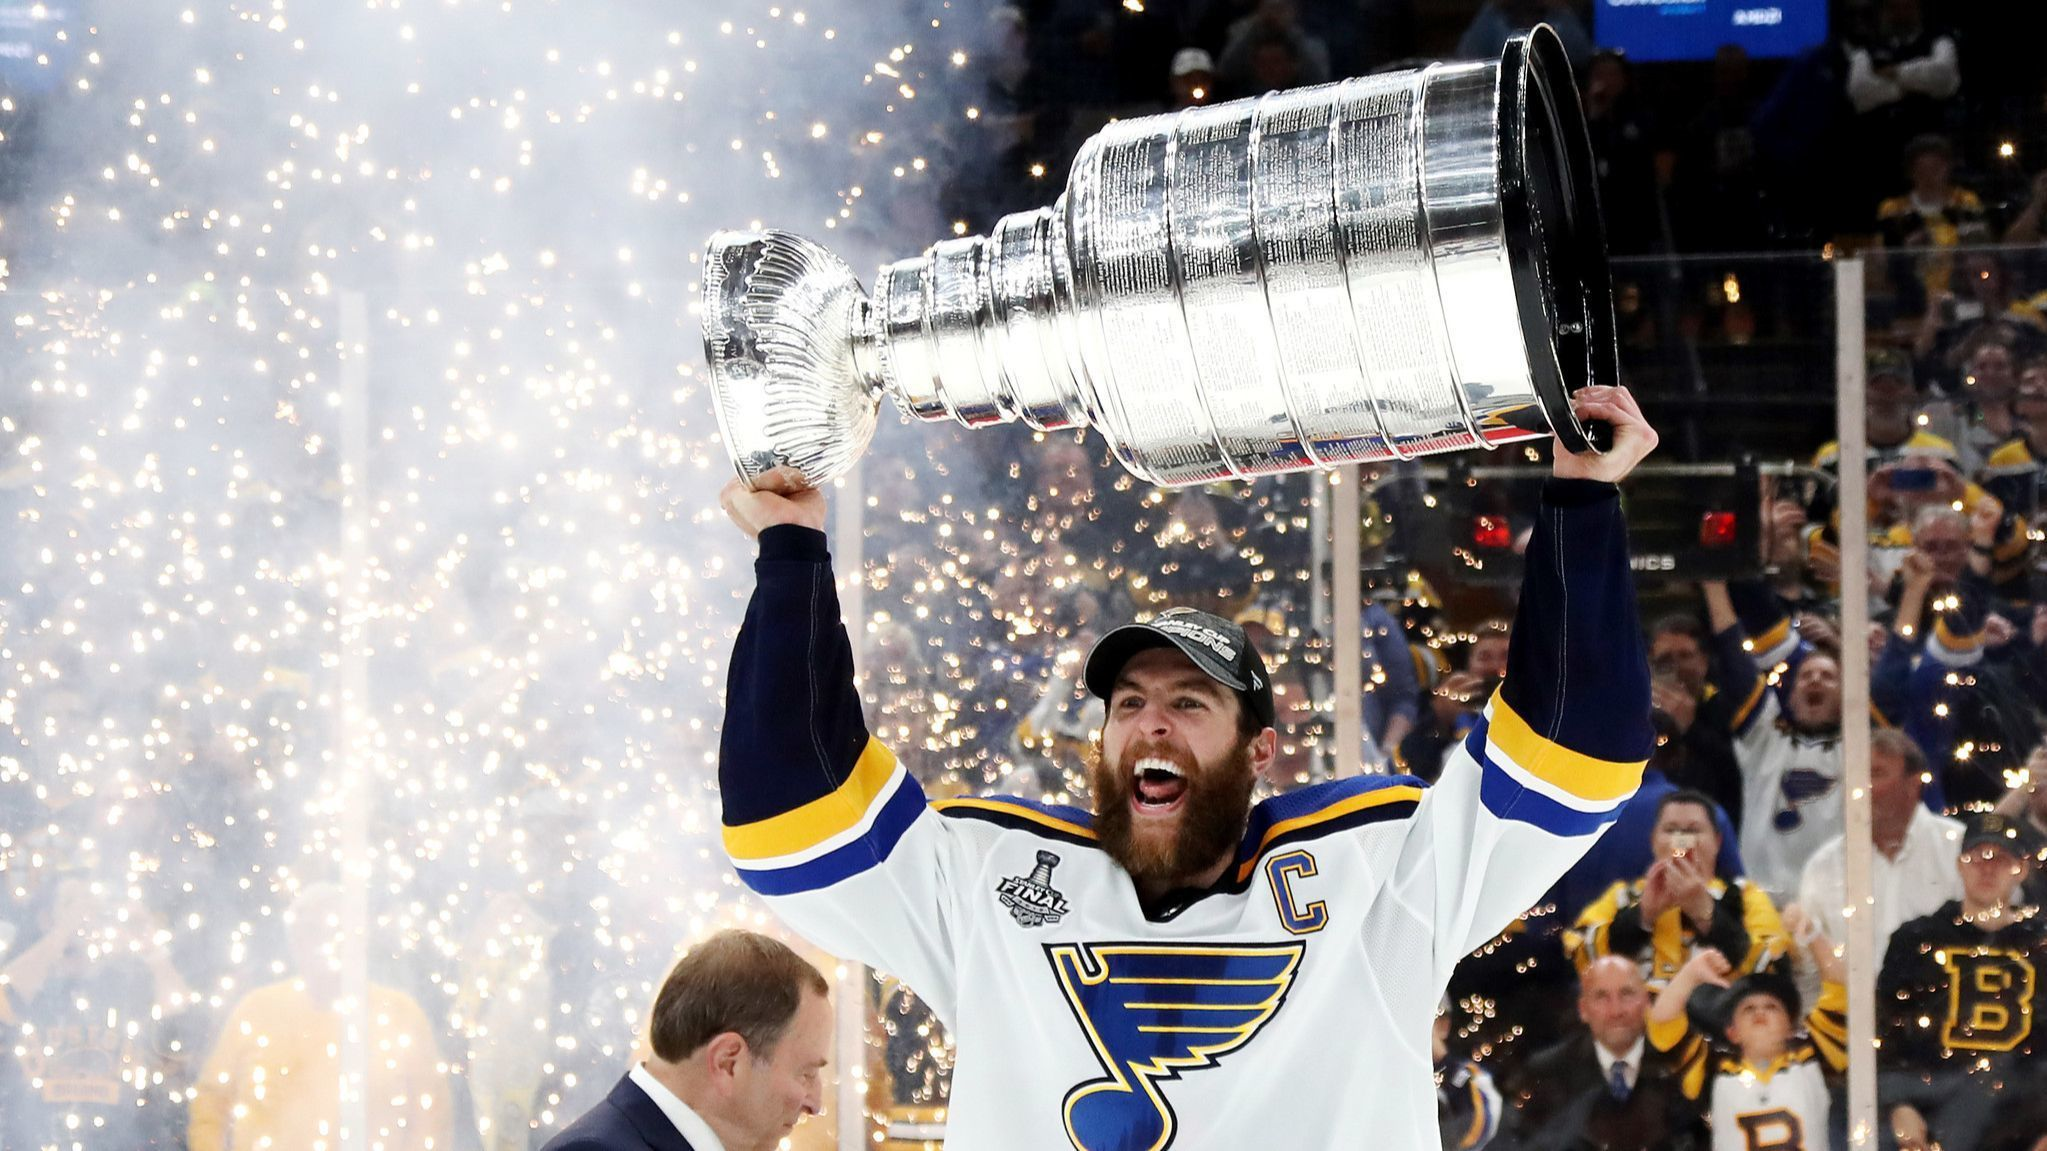 Blues defeat Bruins in Game 7 to win franchise's first Stanley Cup